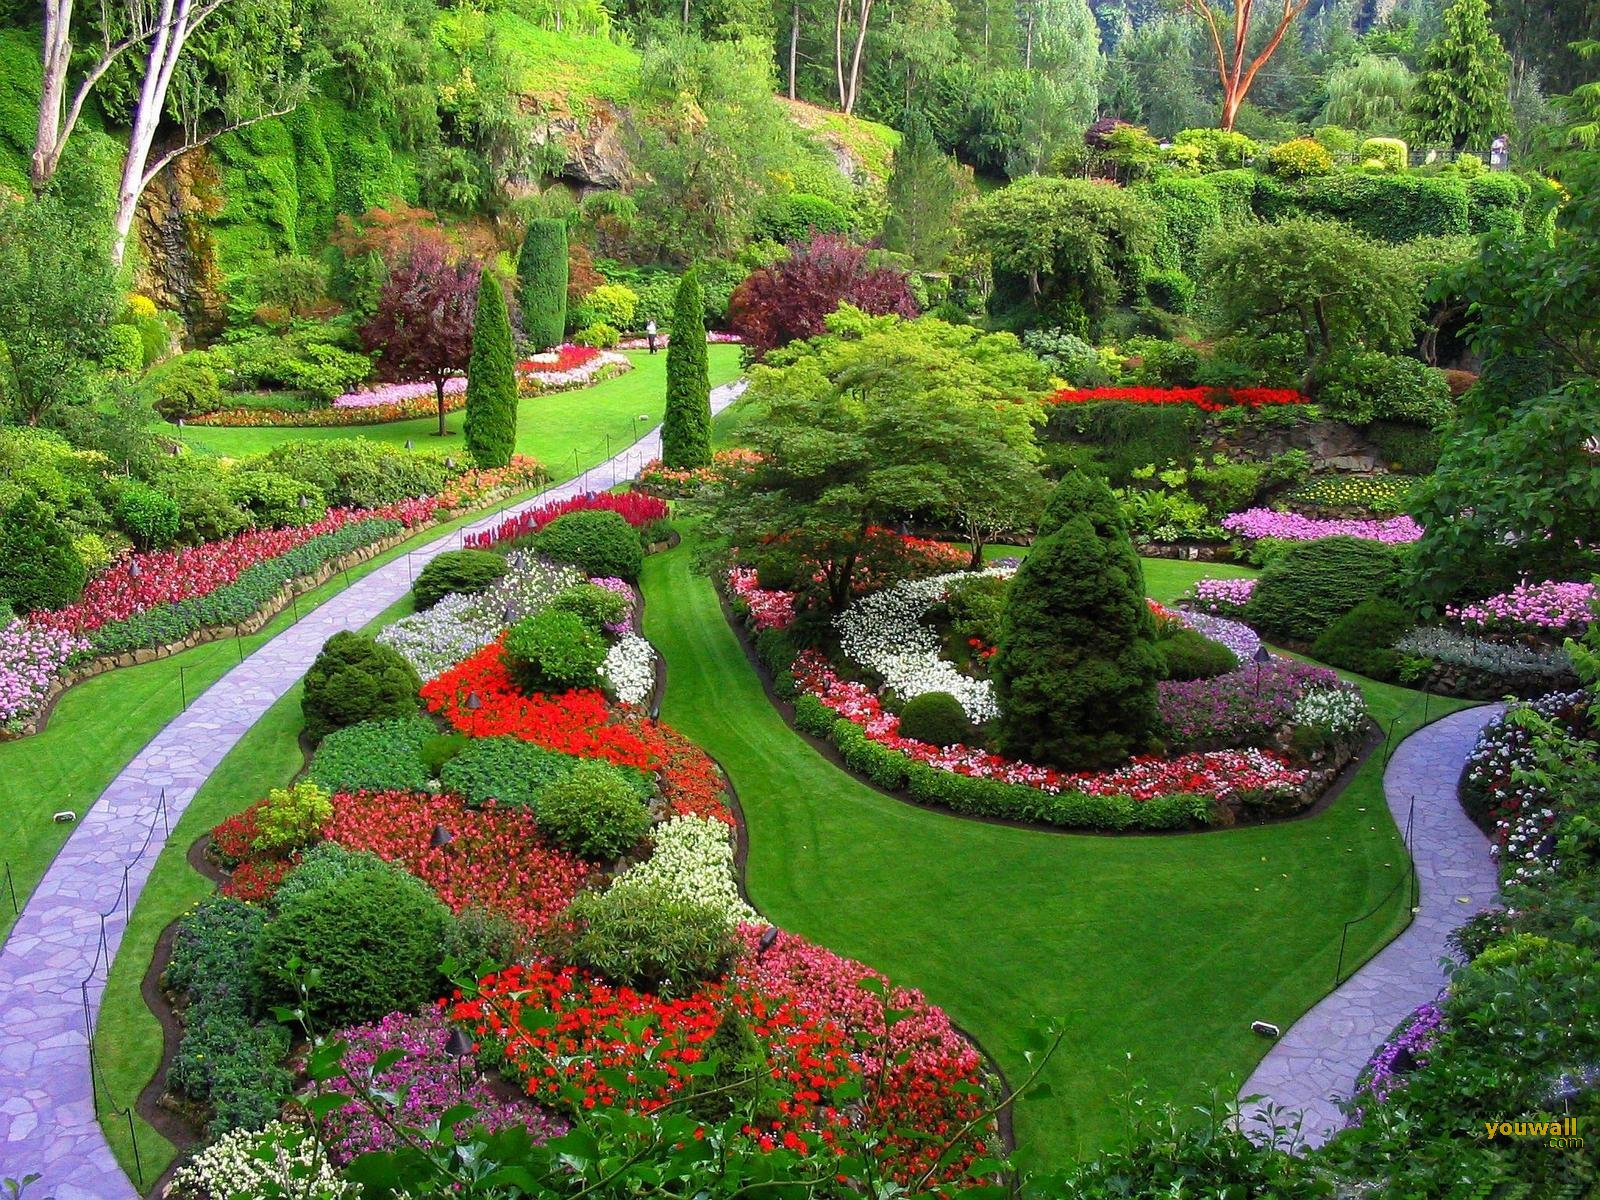 Beautiful Flower Park Wallpaper Hd Free For Desktop Hd Wallpaper